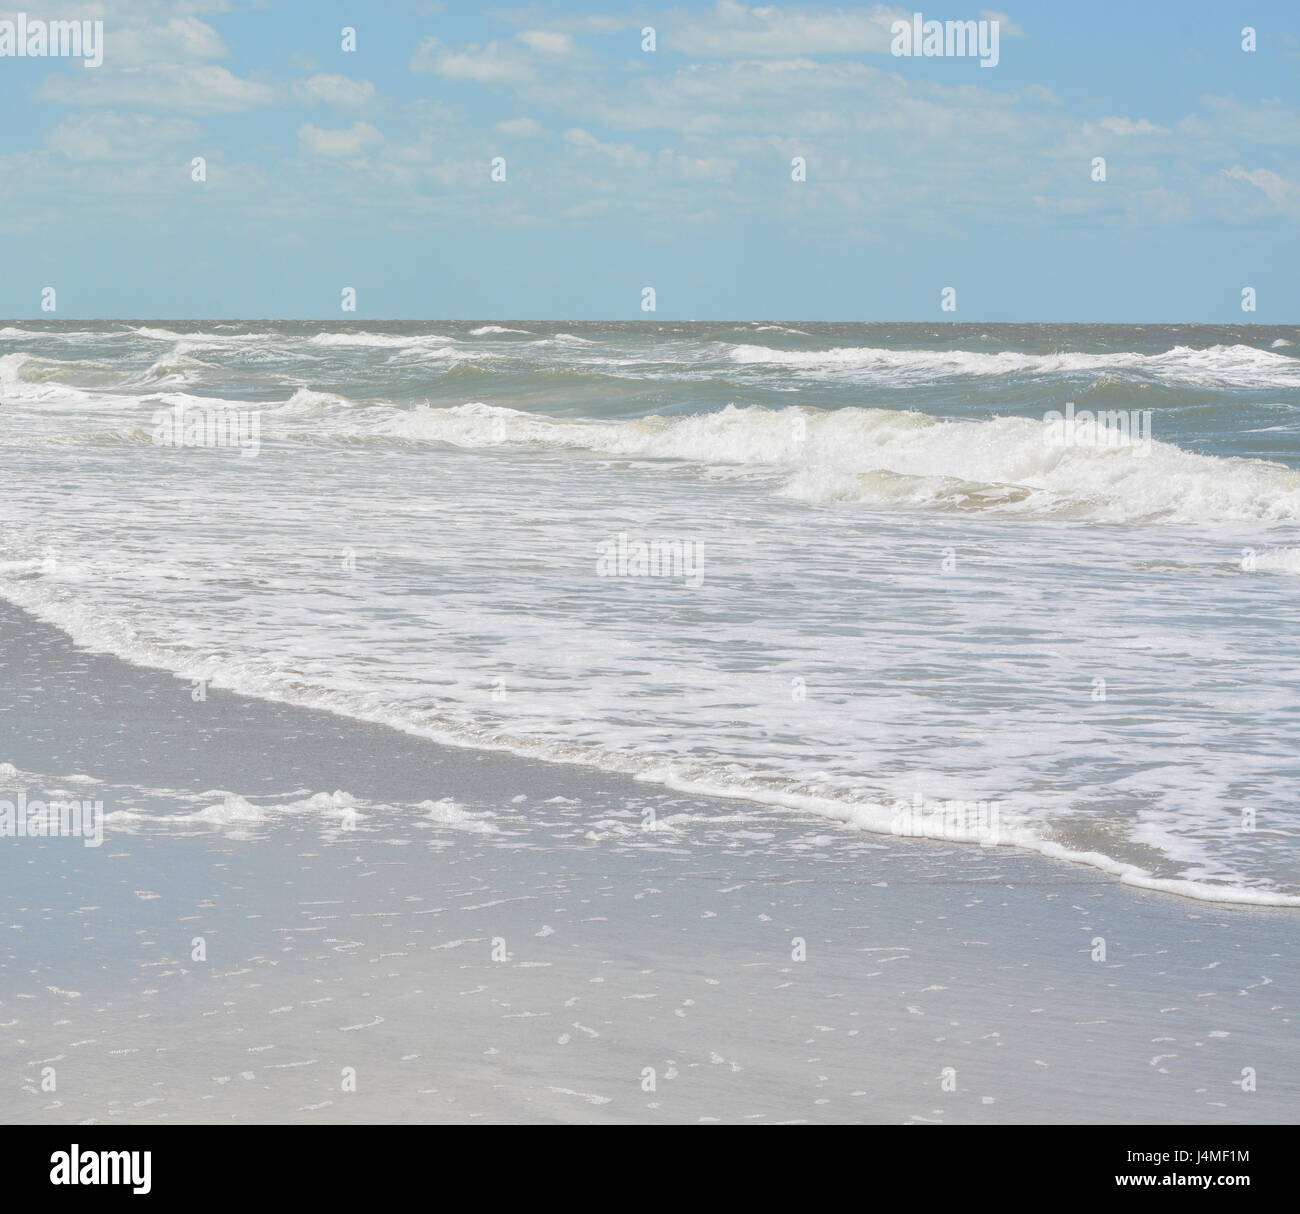 Rough surf at Indian Rocks Beach on the Gulf of Mexico in Florida. Stock Photo